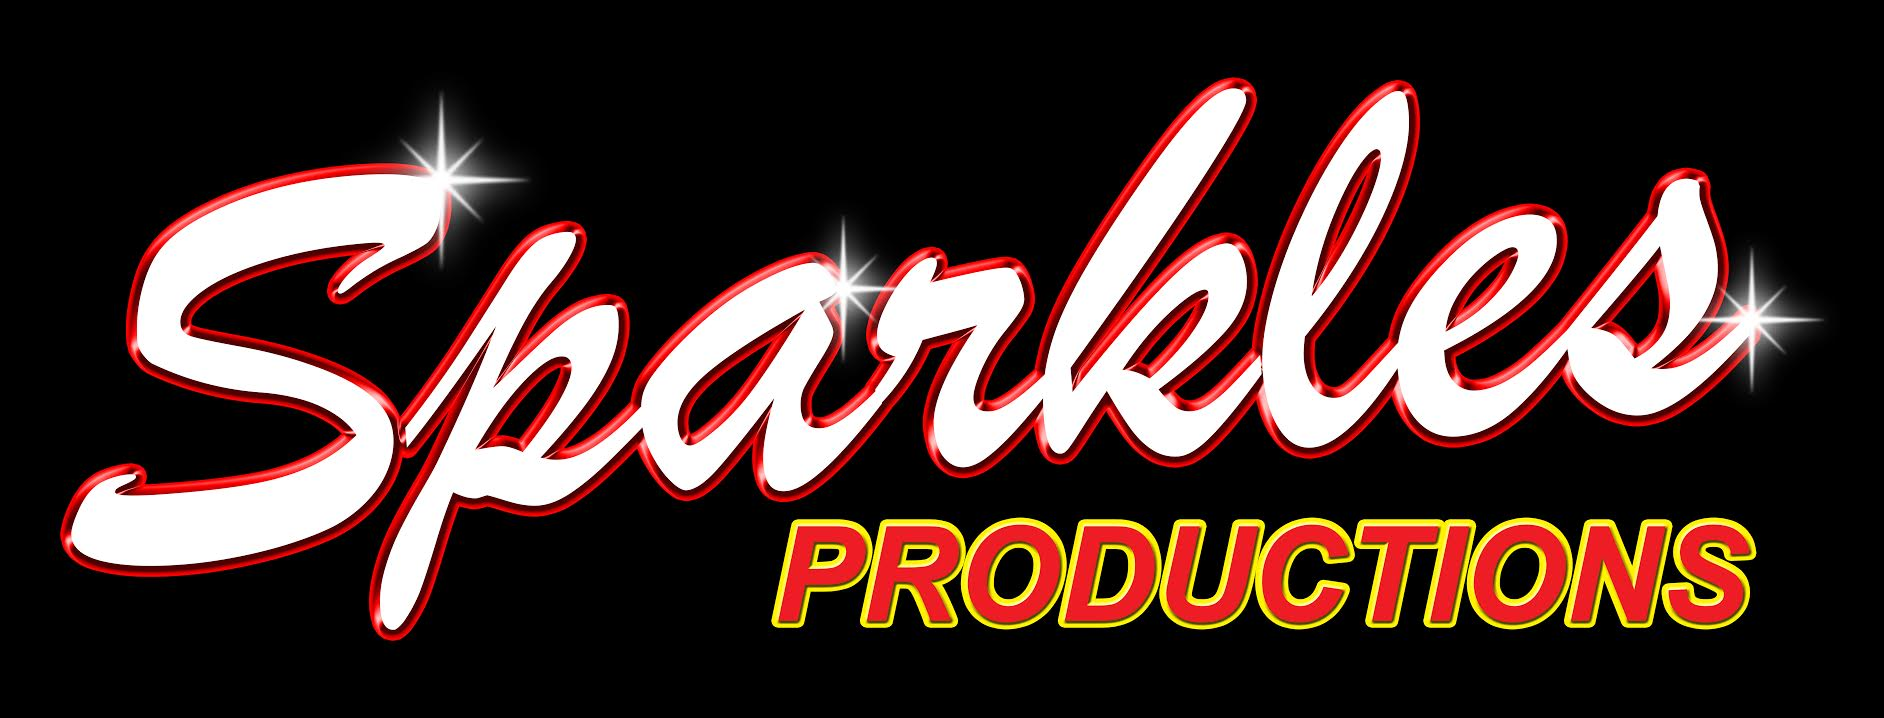 Sparkles Productions Logo (High Quality)